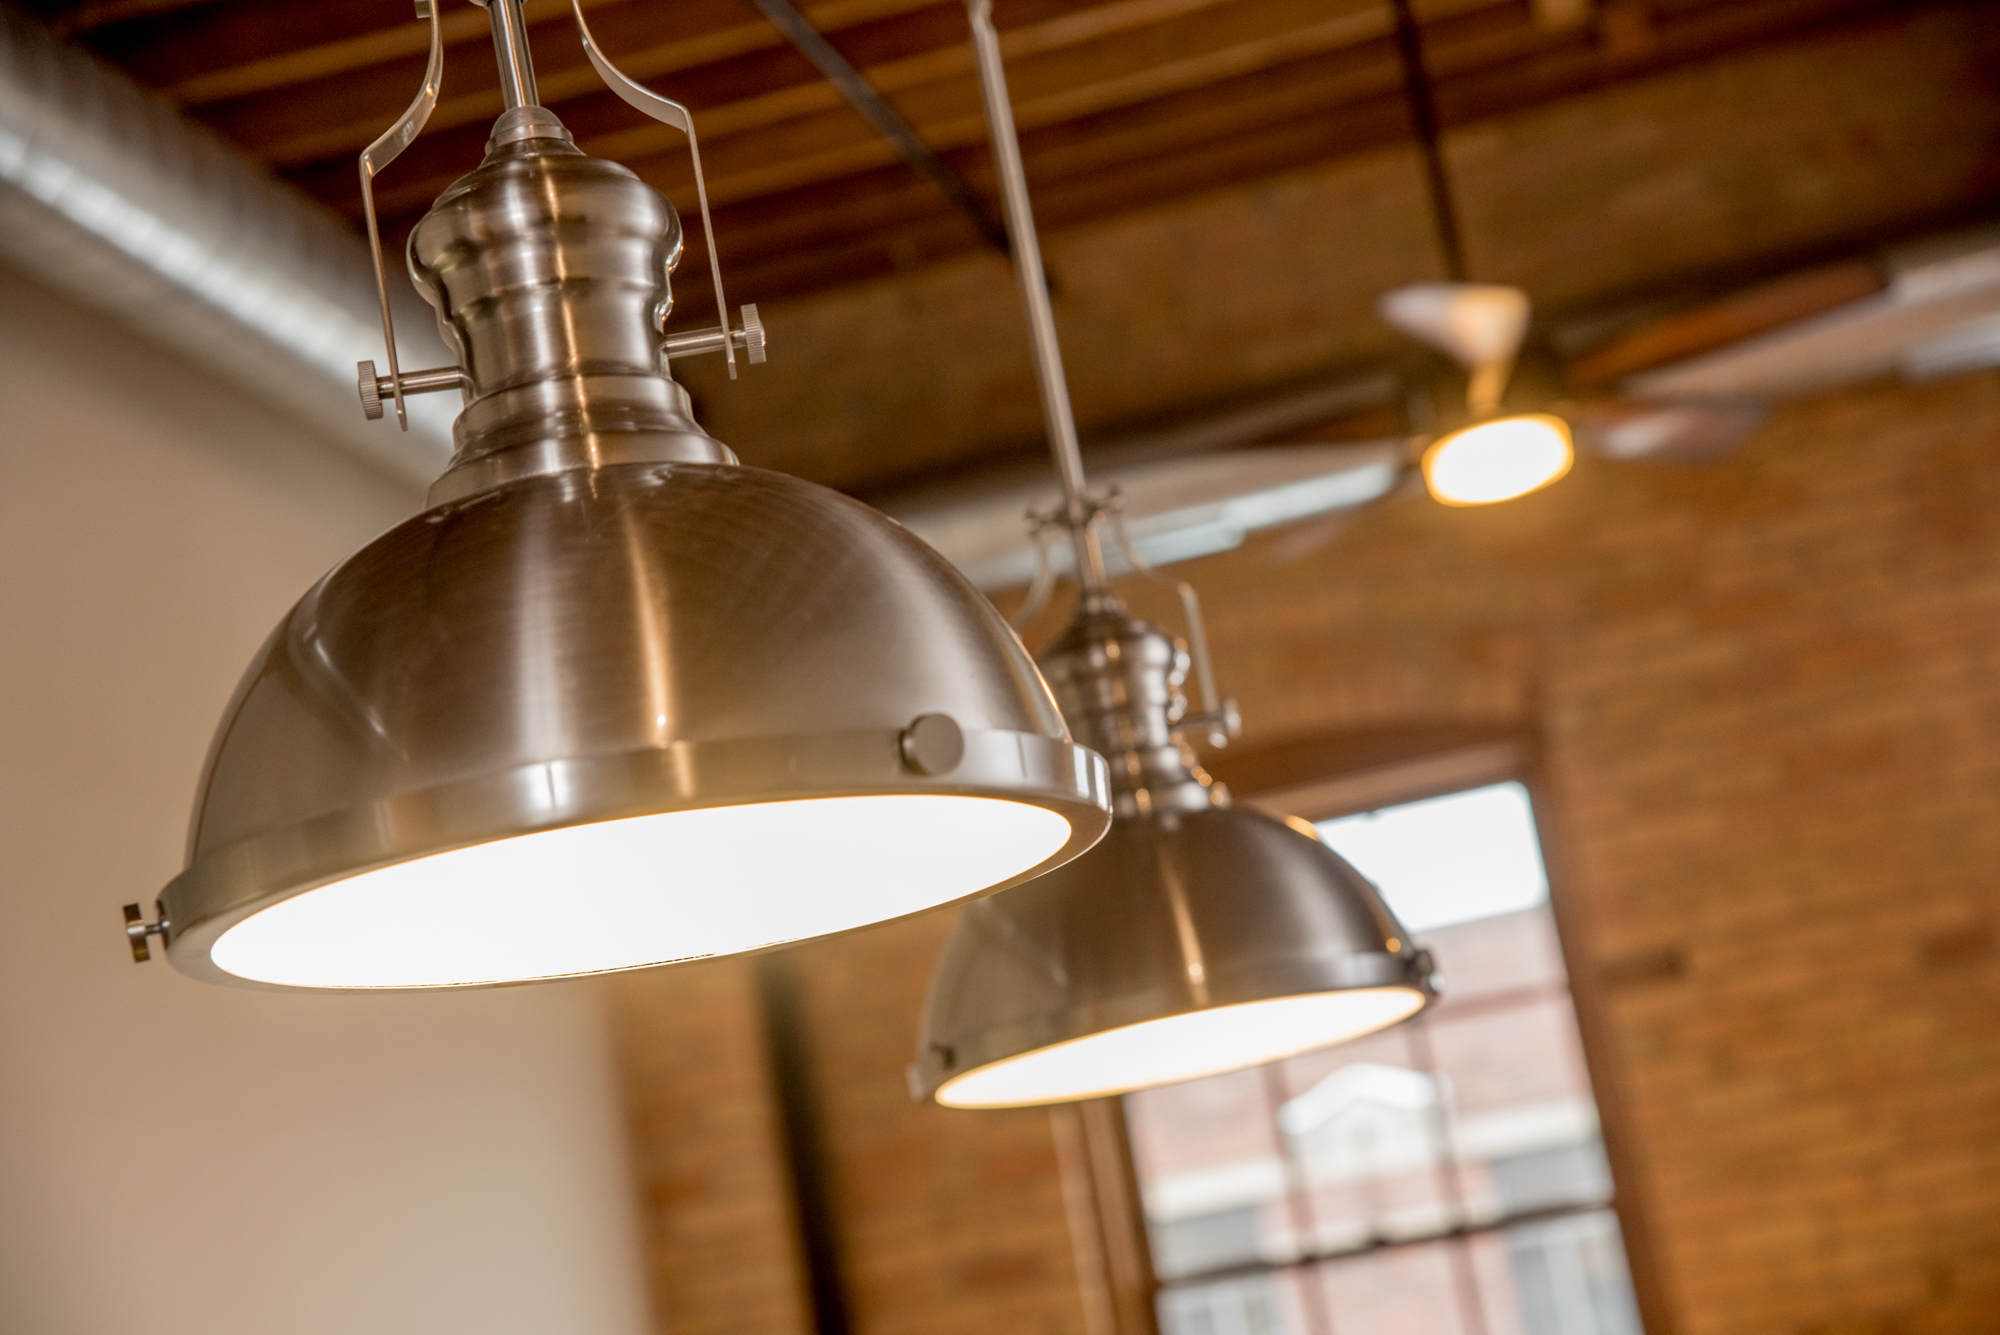 Period-specific light fixtures are both functional and visually appealing